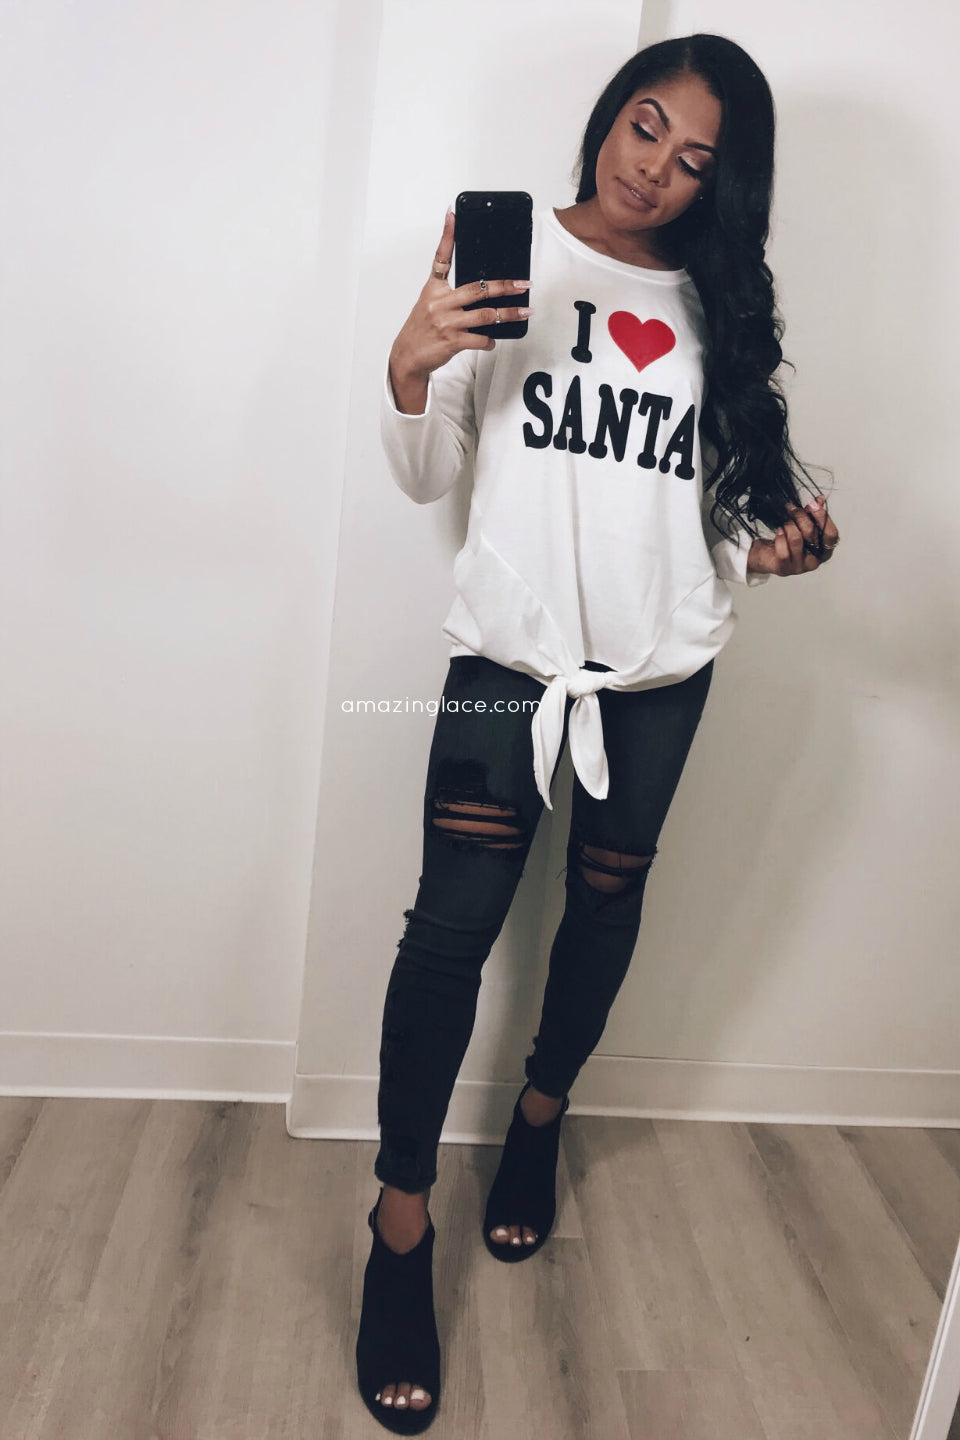 I HEART SANTA TOP HOLIDAY OUTFIT